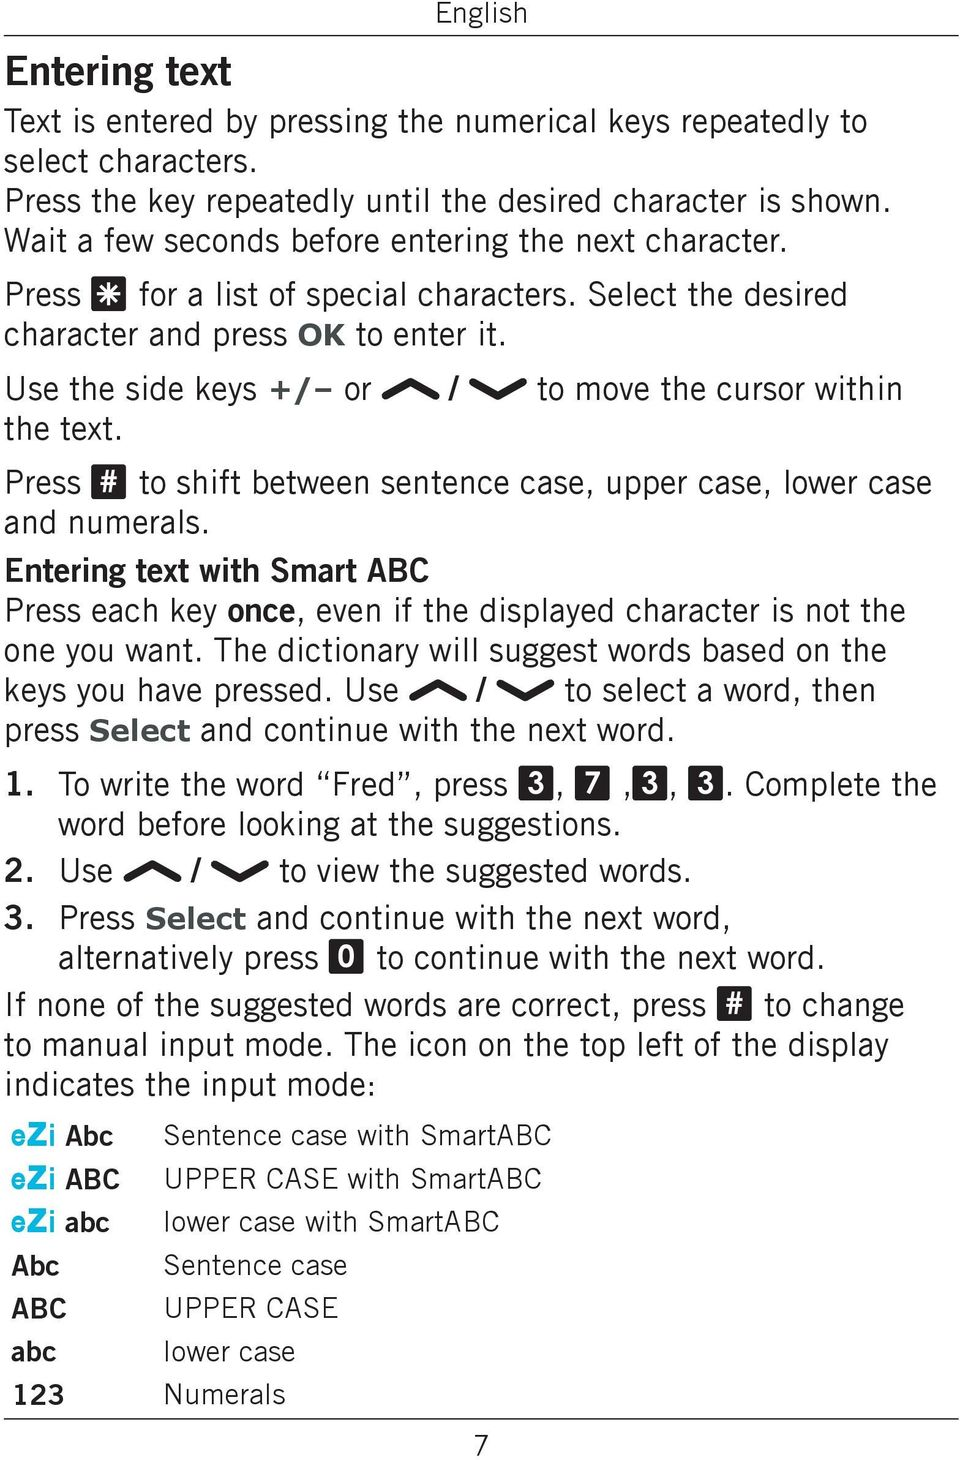 Use the side keys +/ or / to move the cursor within the text. Press # to shift between sentence case, upper case, lower case and numerals.